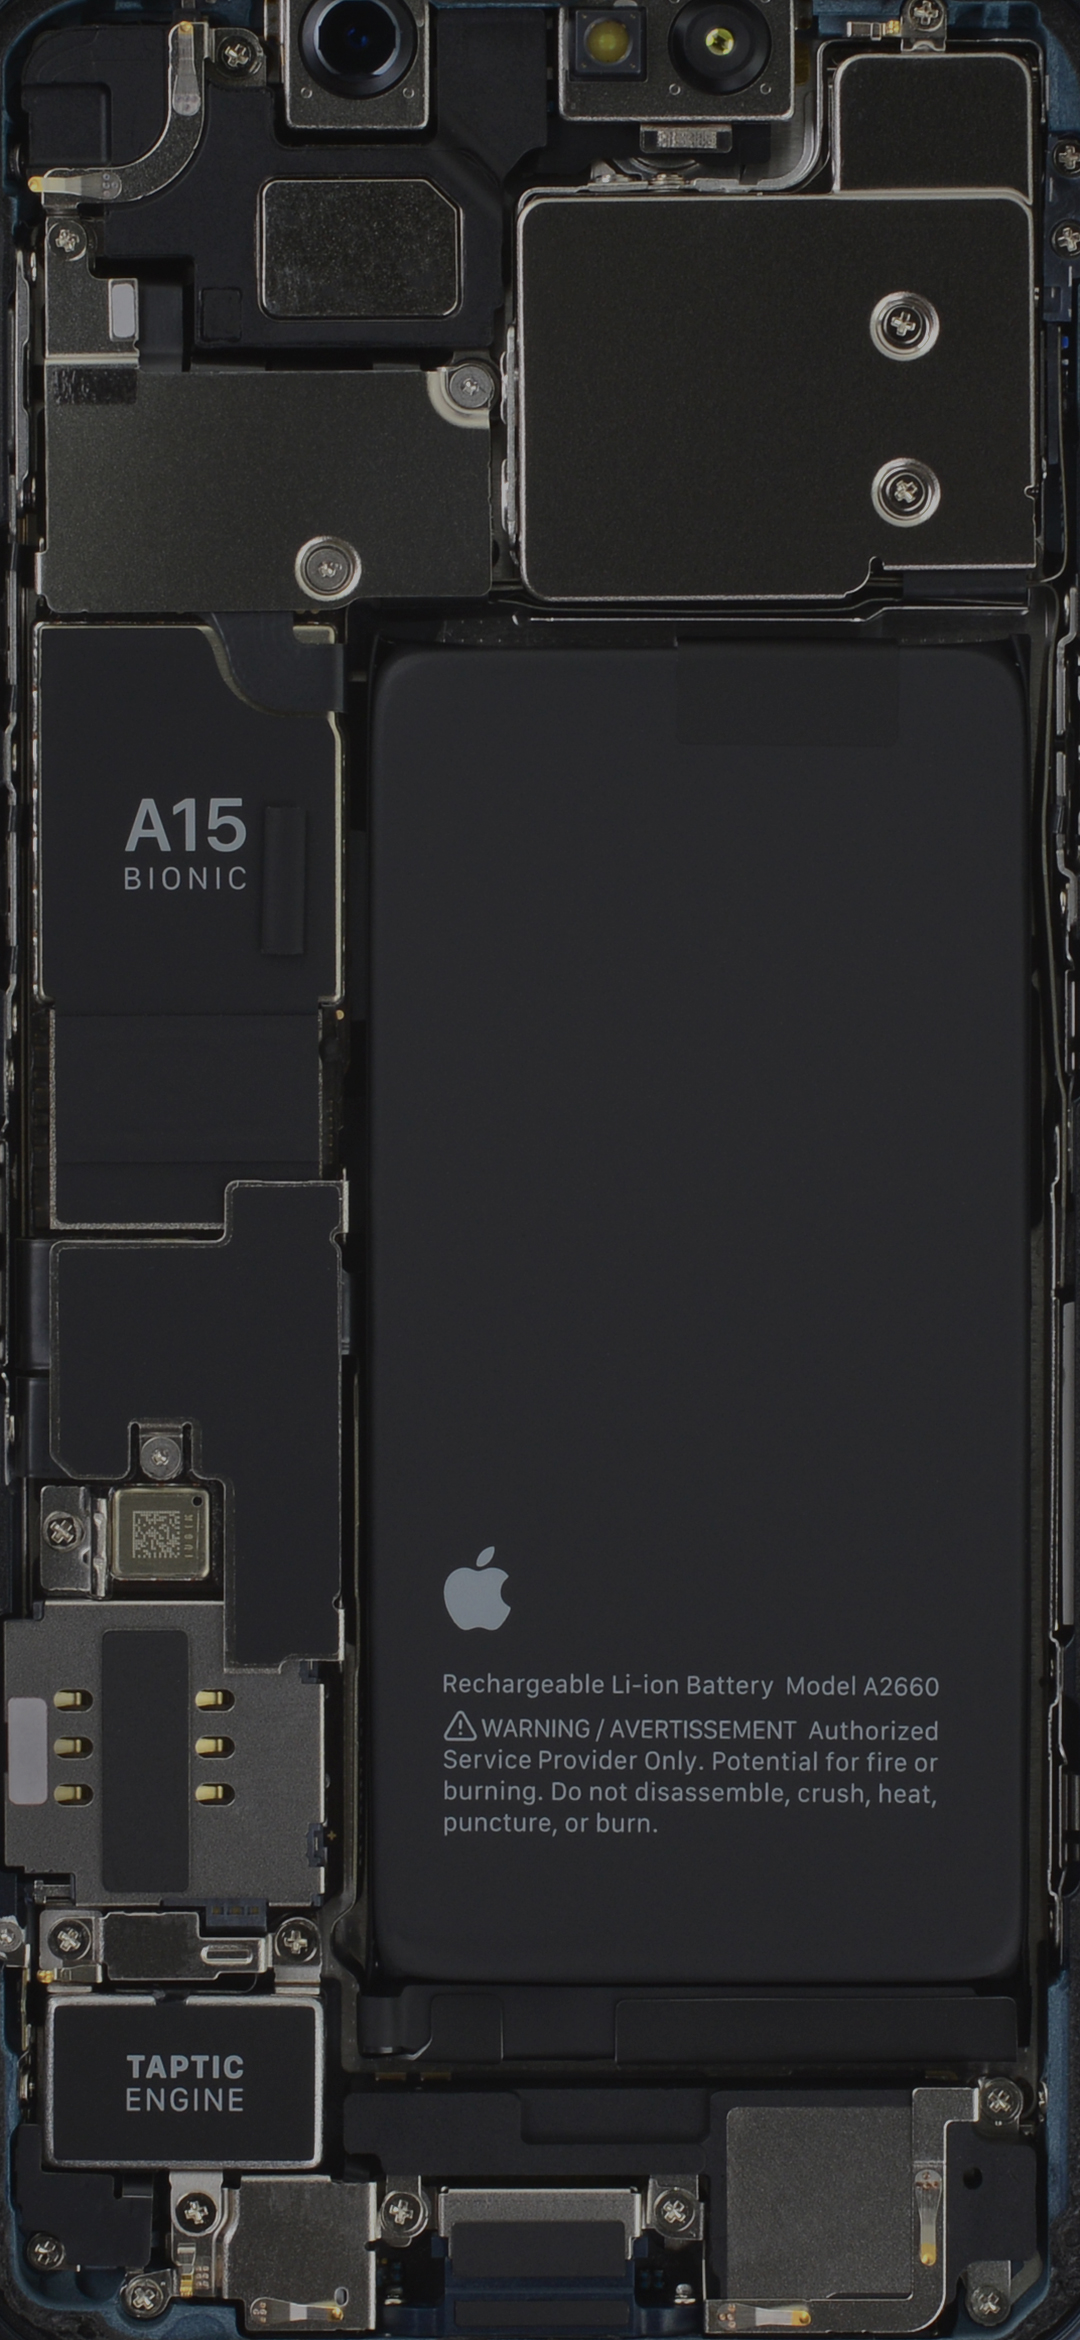 Image of the iPhone 13 mini showing the internals, cropped to proper wallpaper or lock screen size.